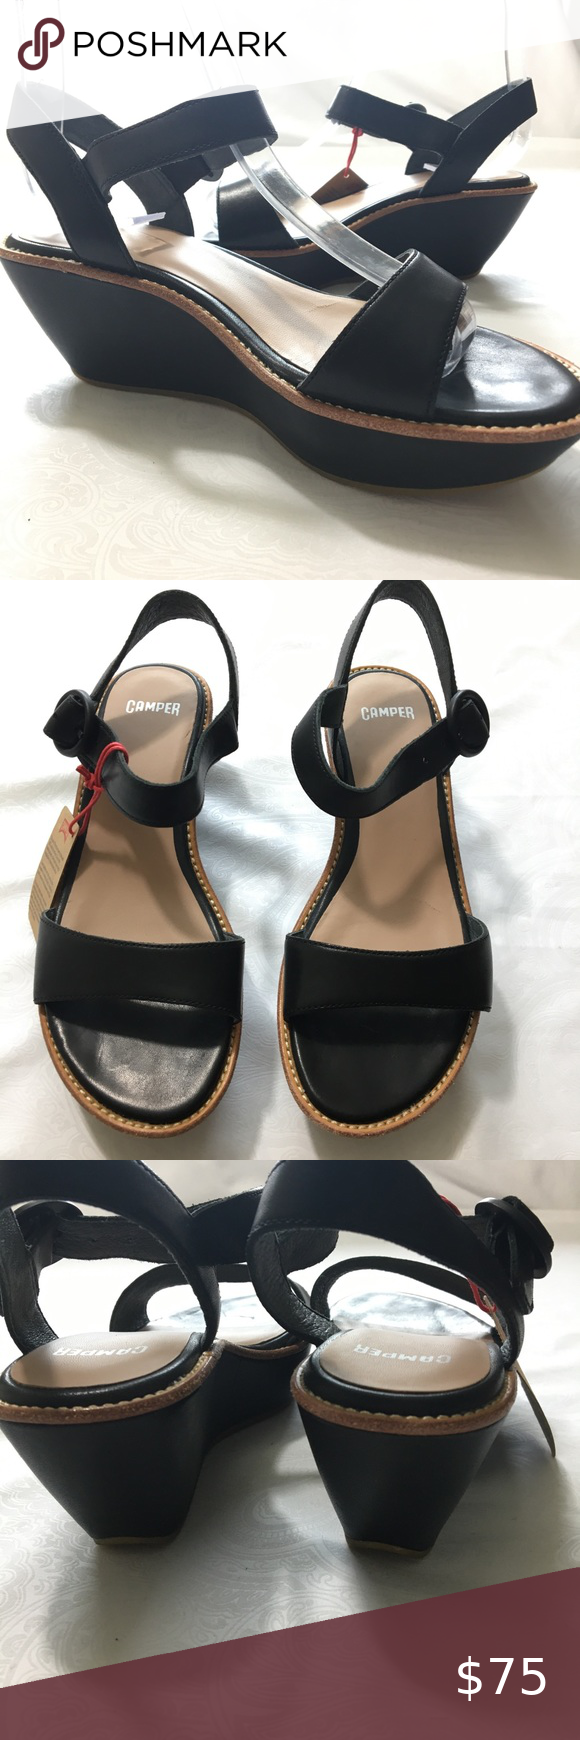 Camper Leather Wedges Size 5/ 5.5